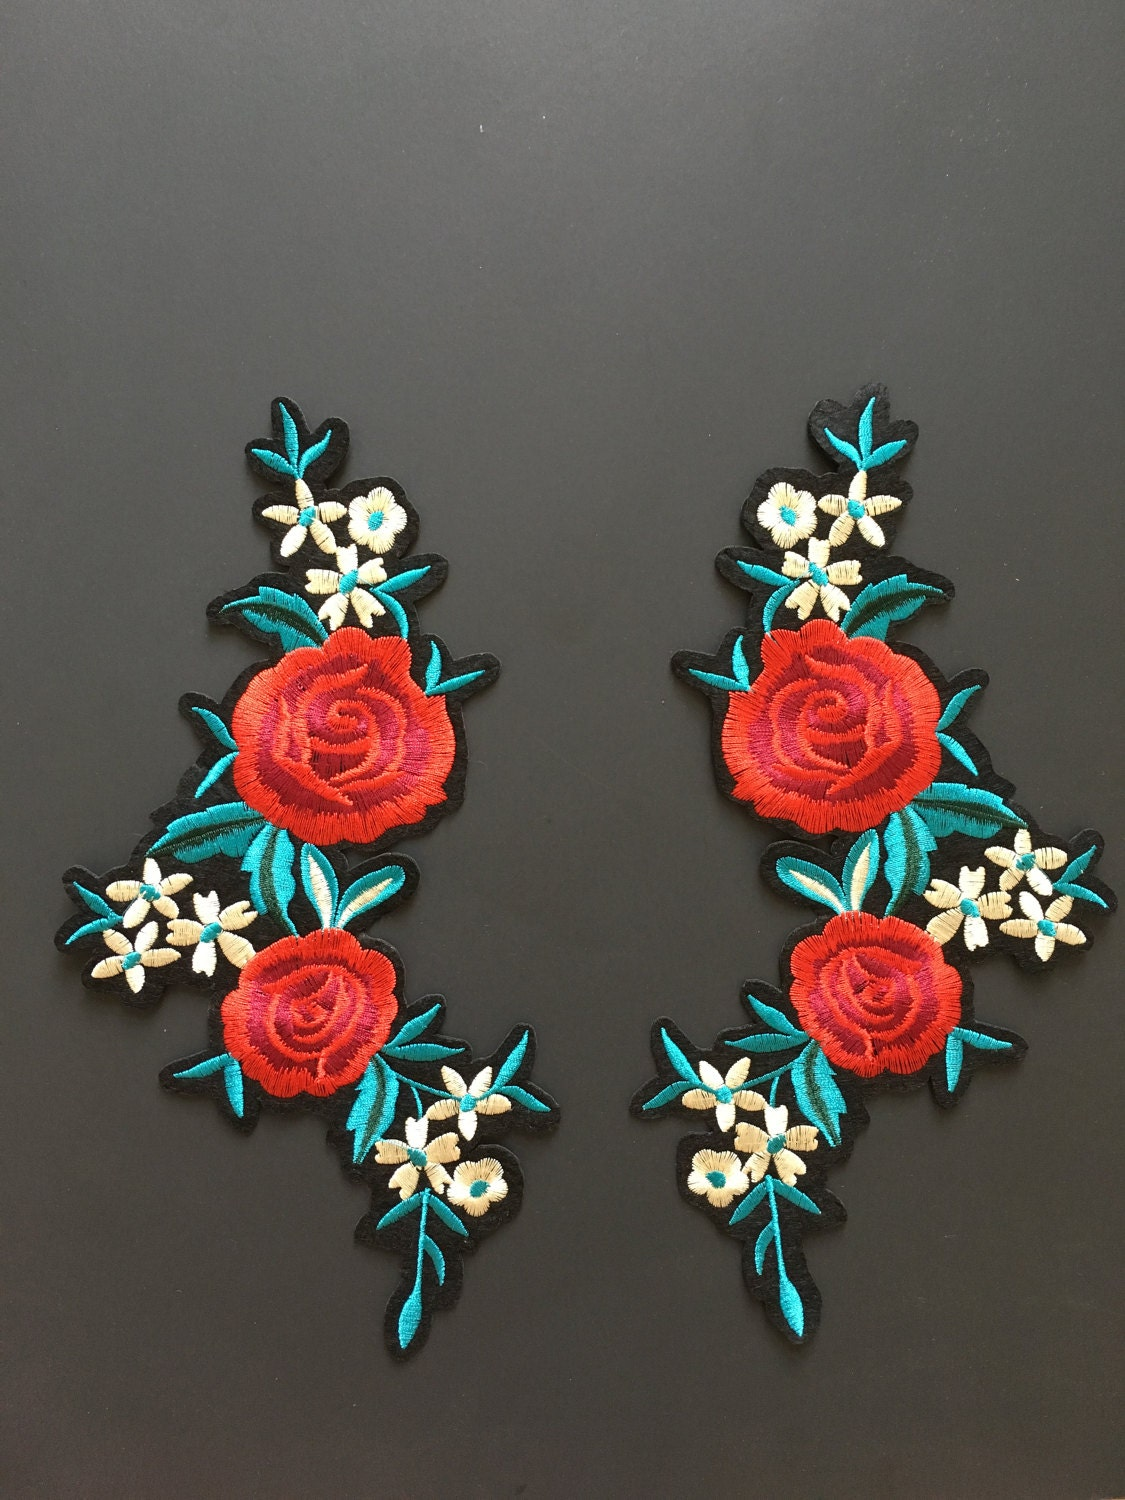 Iron on patch embroidery gucci style patches rose